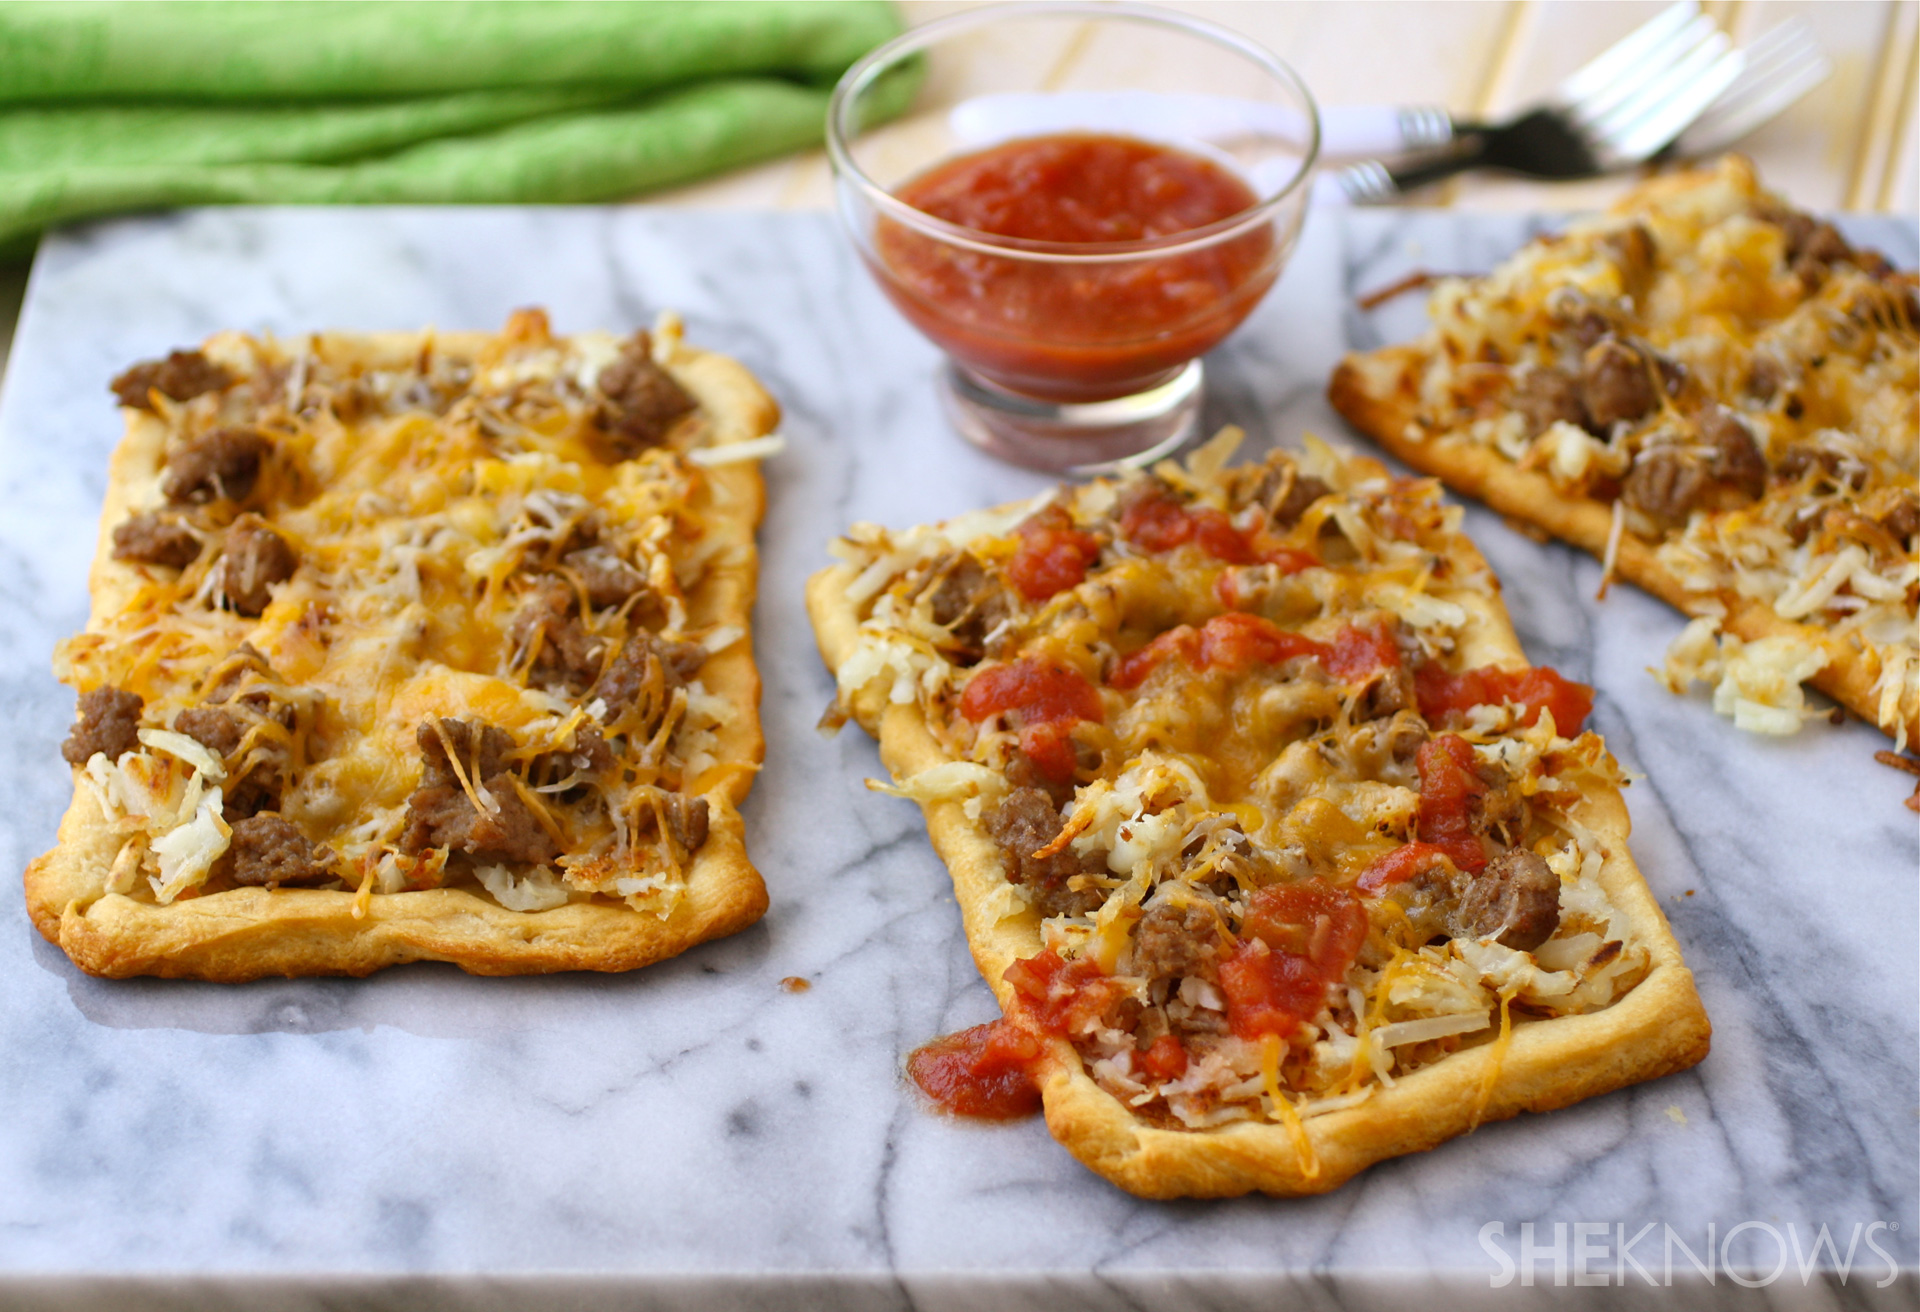 Cheesy sausage and hash brown pizza